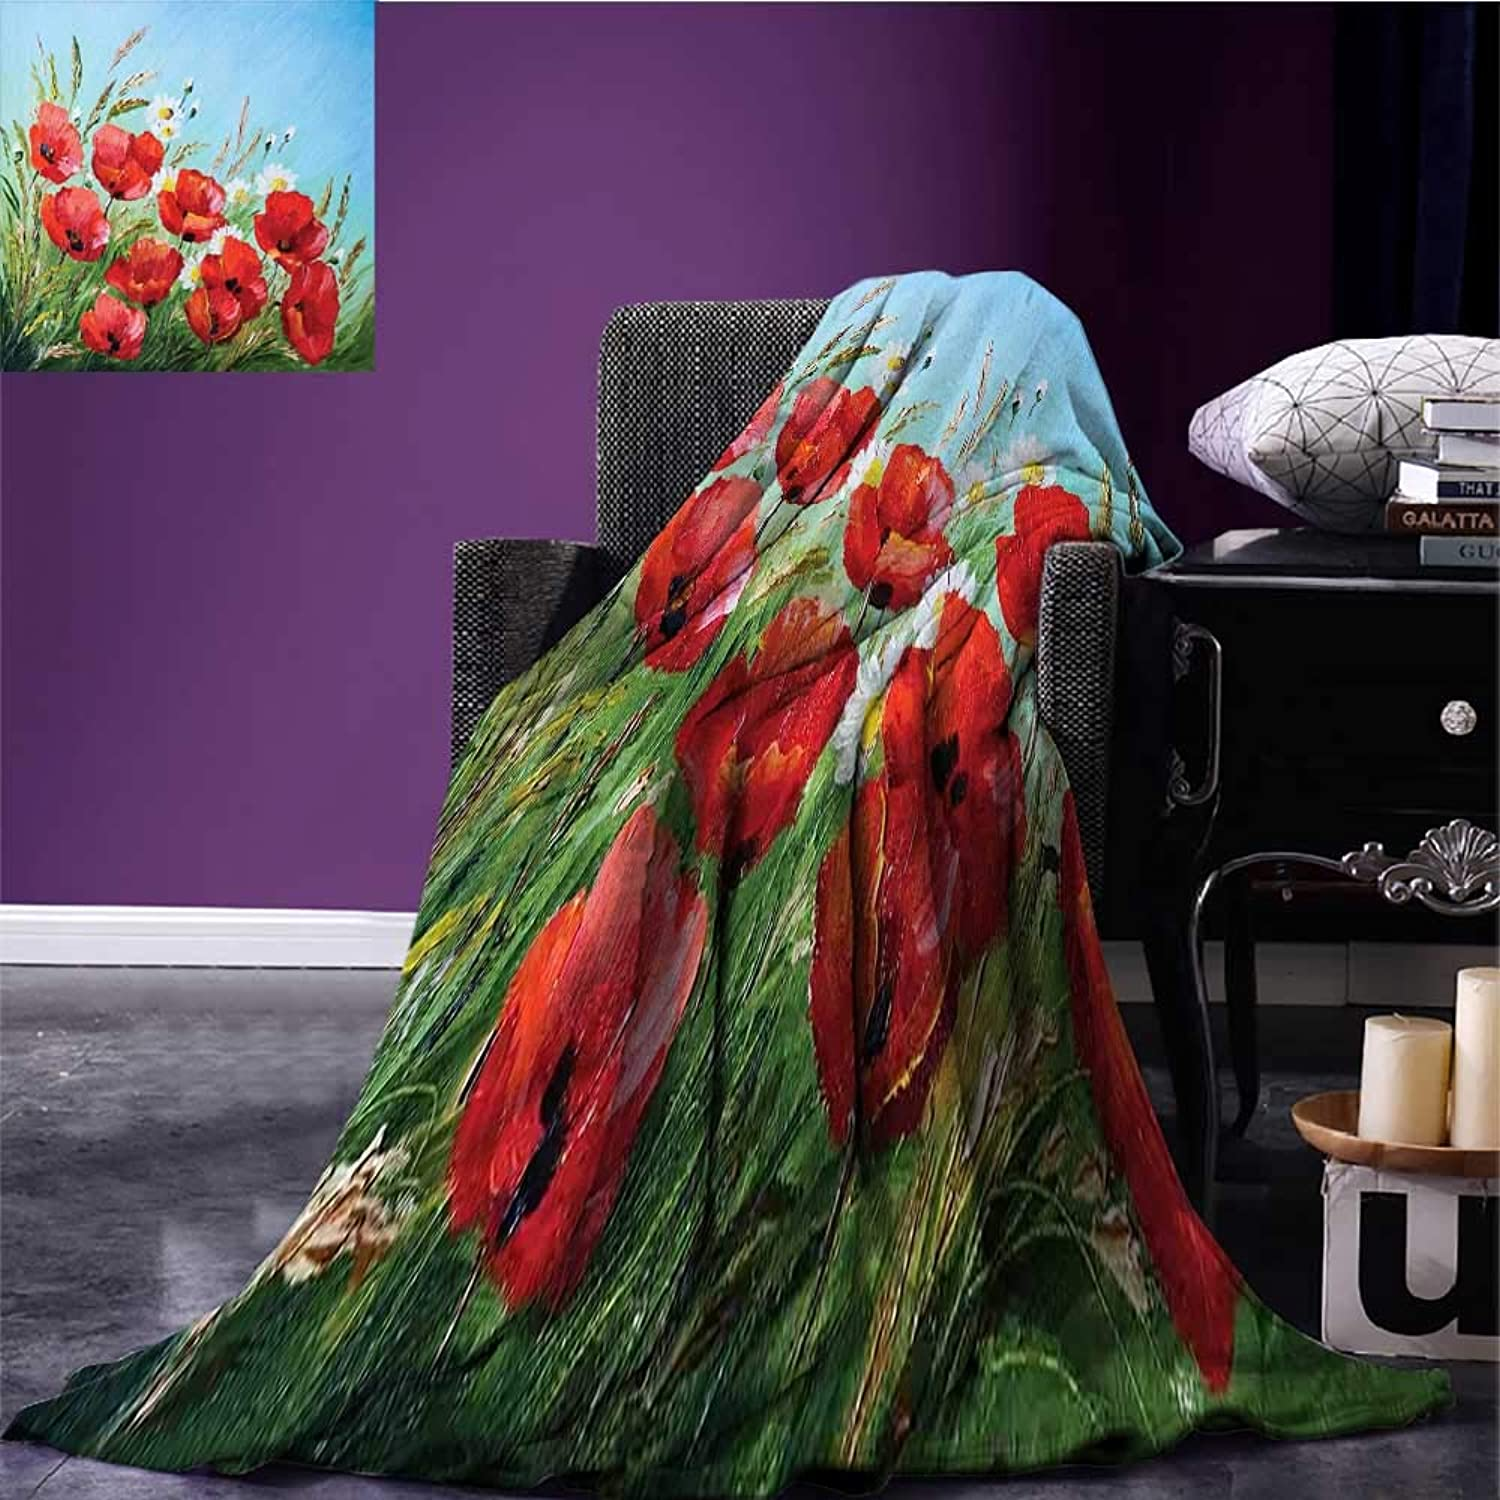 Homehot Flower Printing Blanket Greek Style House with Flowers Garden Seascape and Mountain Scenery Picture Print Summer Quilt Comforter Pale bluee Red Green Bed or Couch 60 x50